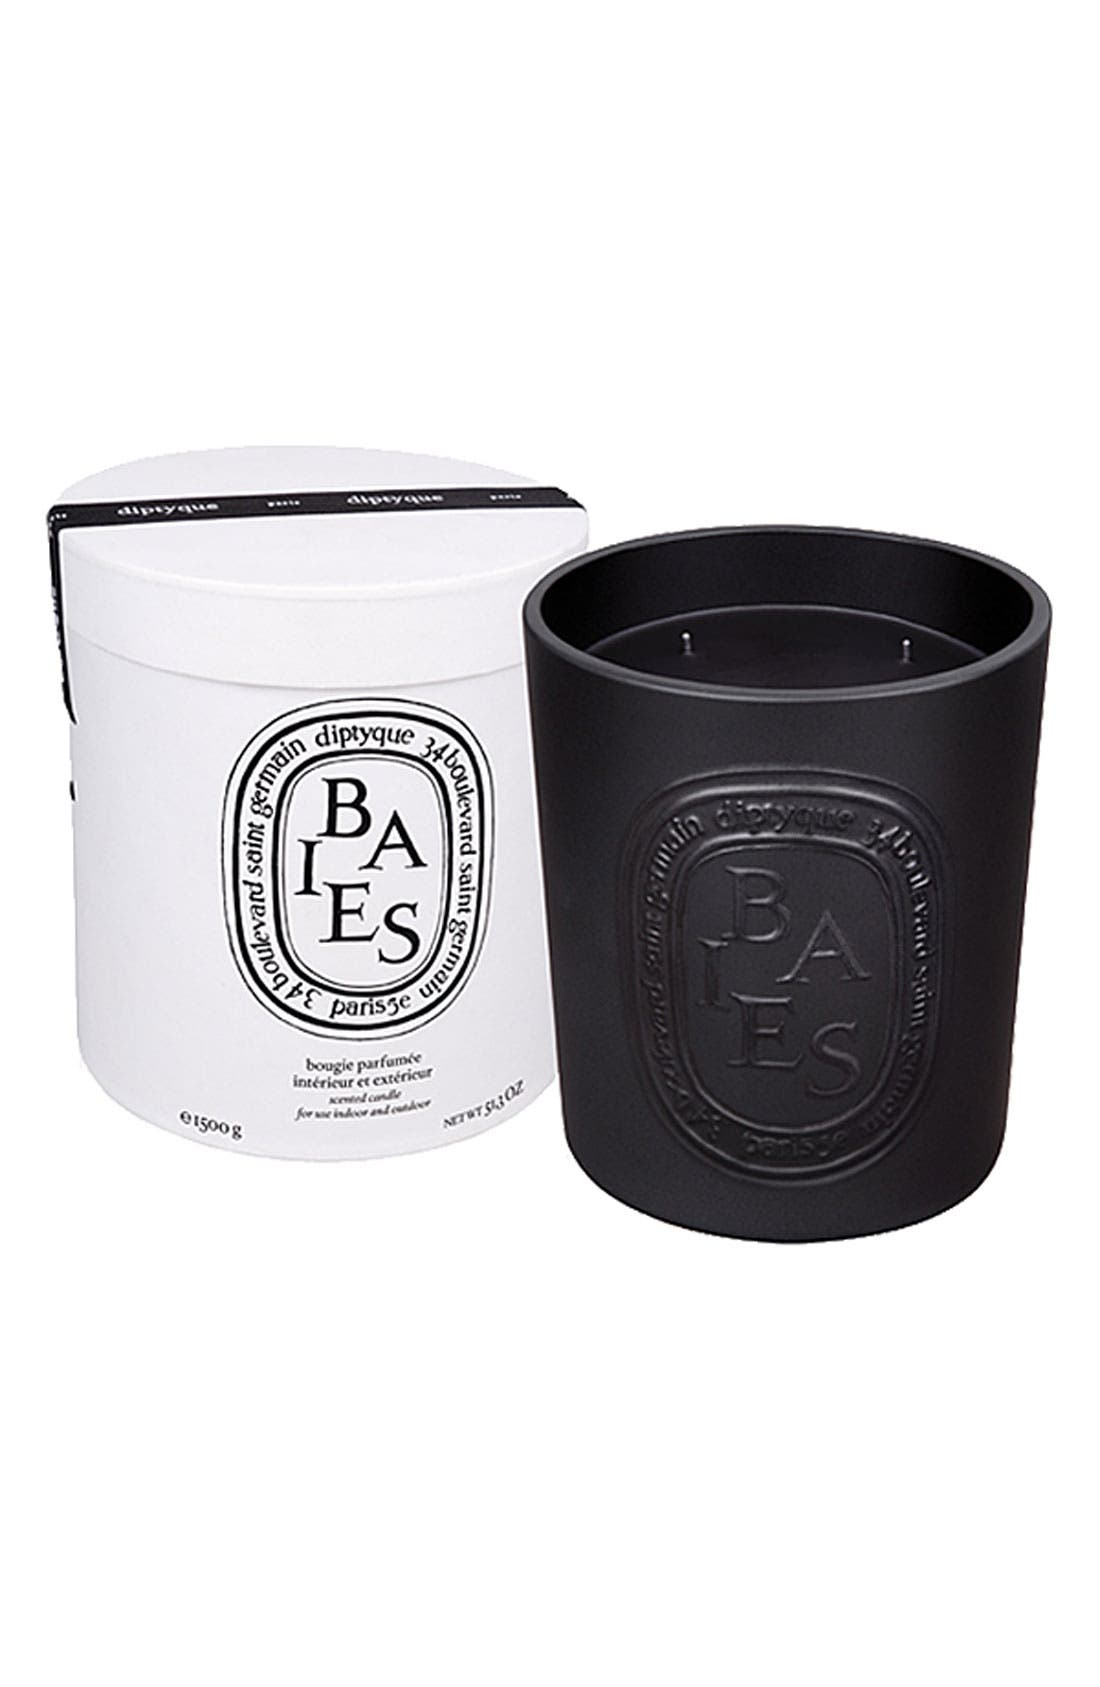 Alternate Image 1 Selected - diptyque 'Baies/Berries' Large Scented Candle